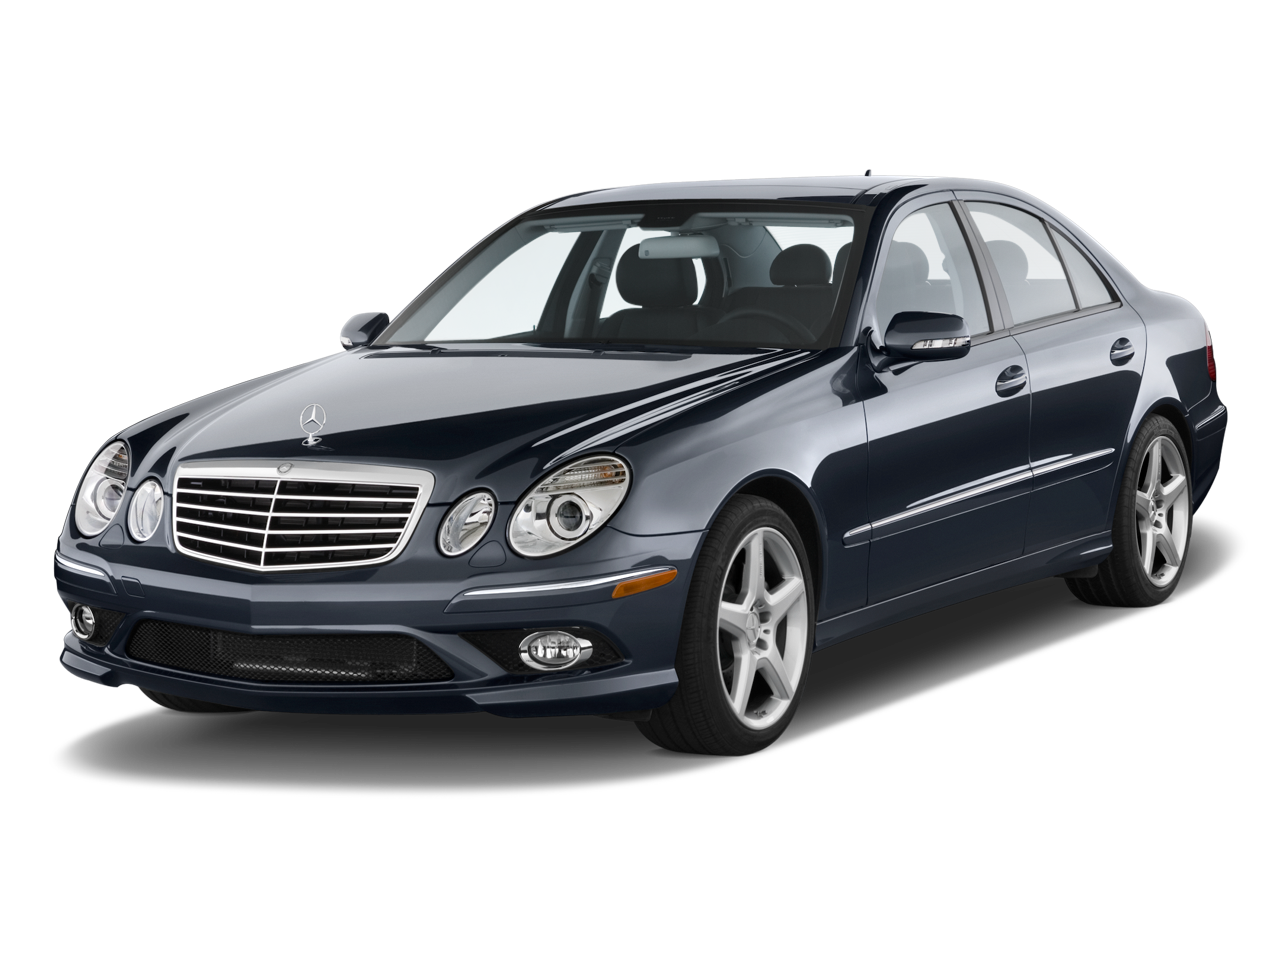 2009 mercedes benz e class 2008 2009 future cars sneak for Mercedes benz ml 350 for sale